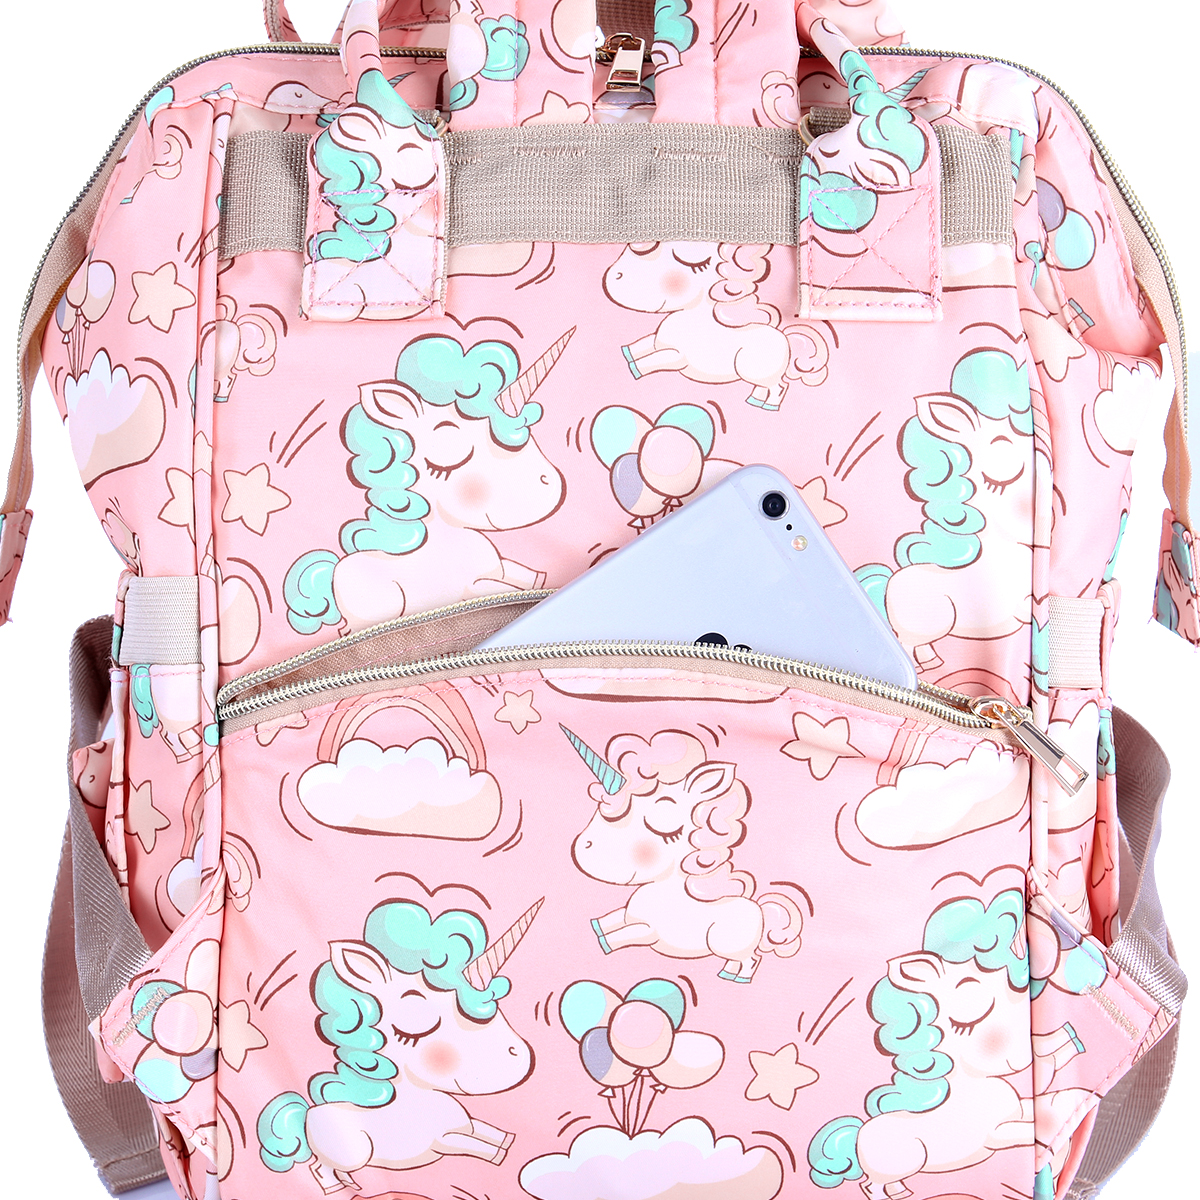 H80cc2197471040a0876f5acda4bfb5fe7 Diaper Bag Backpack For Moms Waterproof Large Capacity Stroller Diaper Organizer Unicorn Maternity Bags Nappy Changing Baby Bag